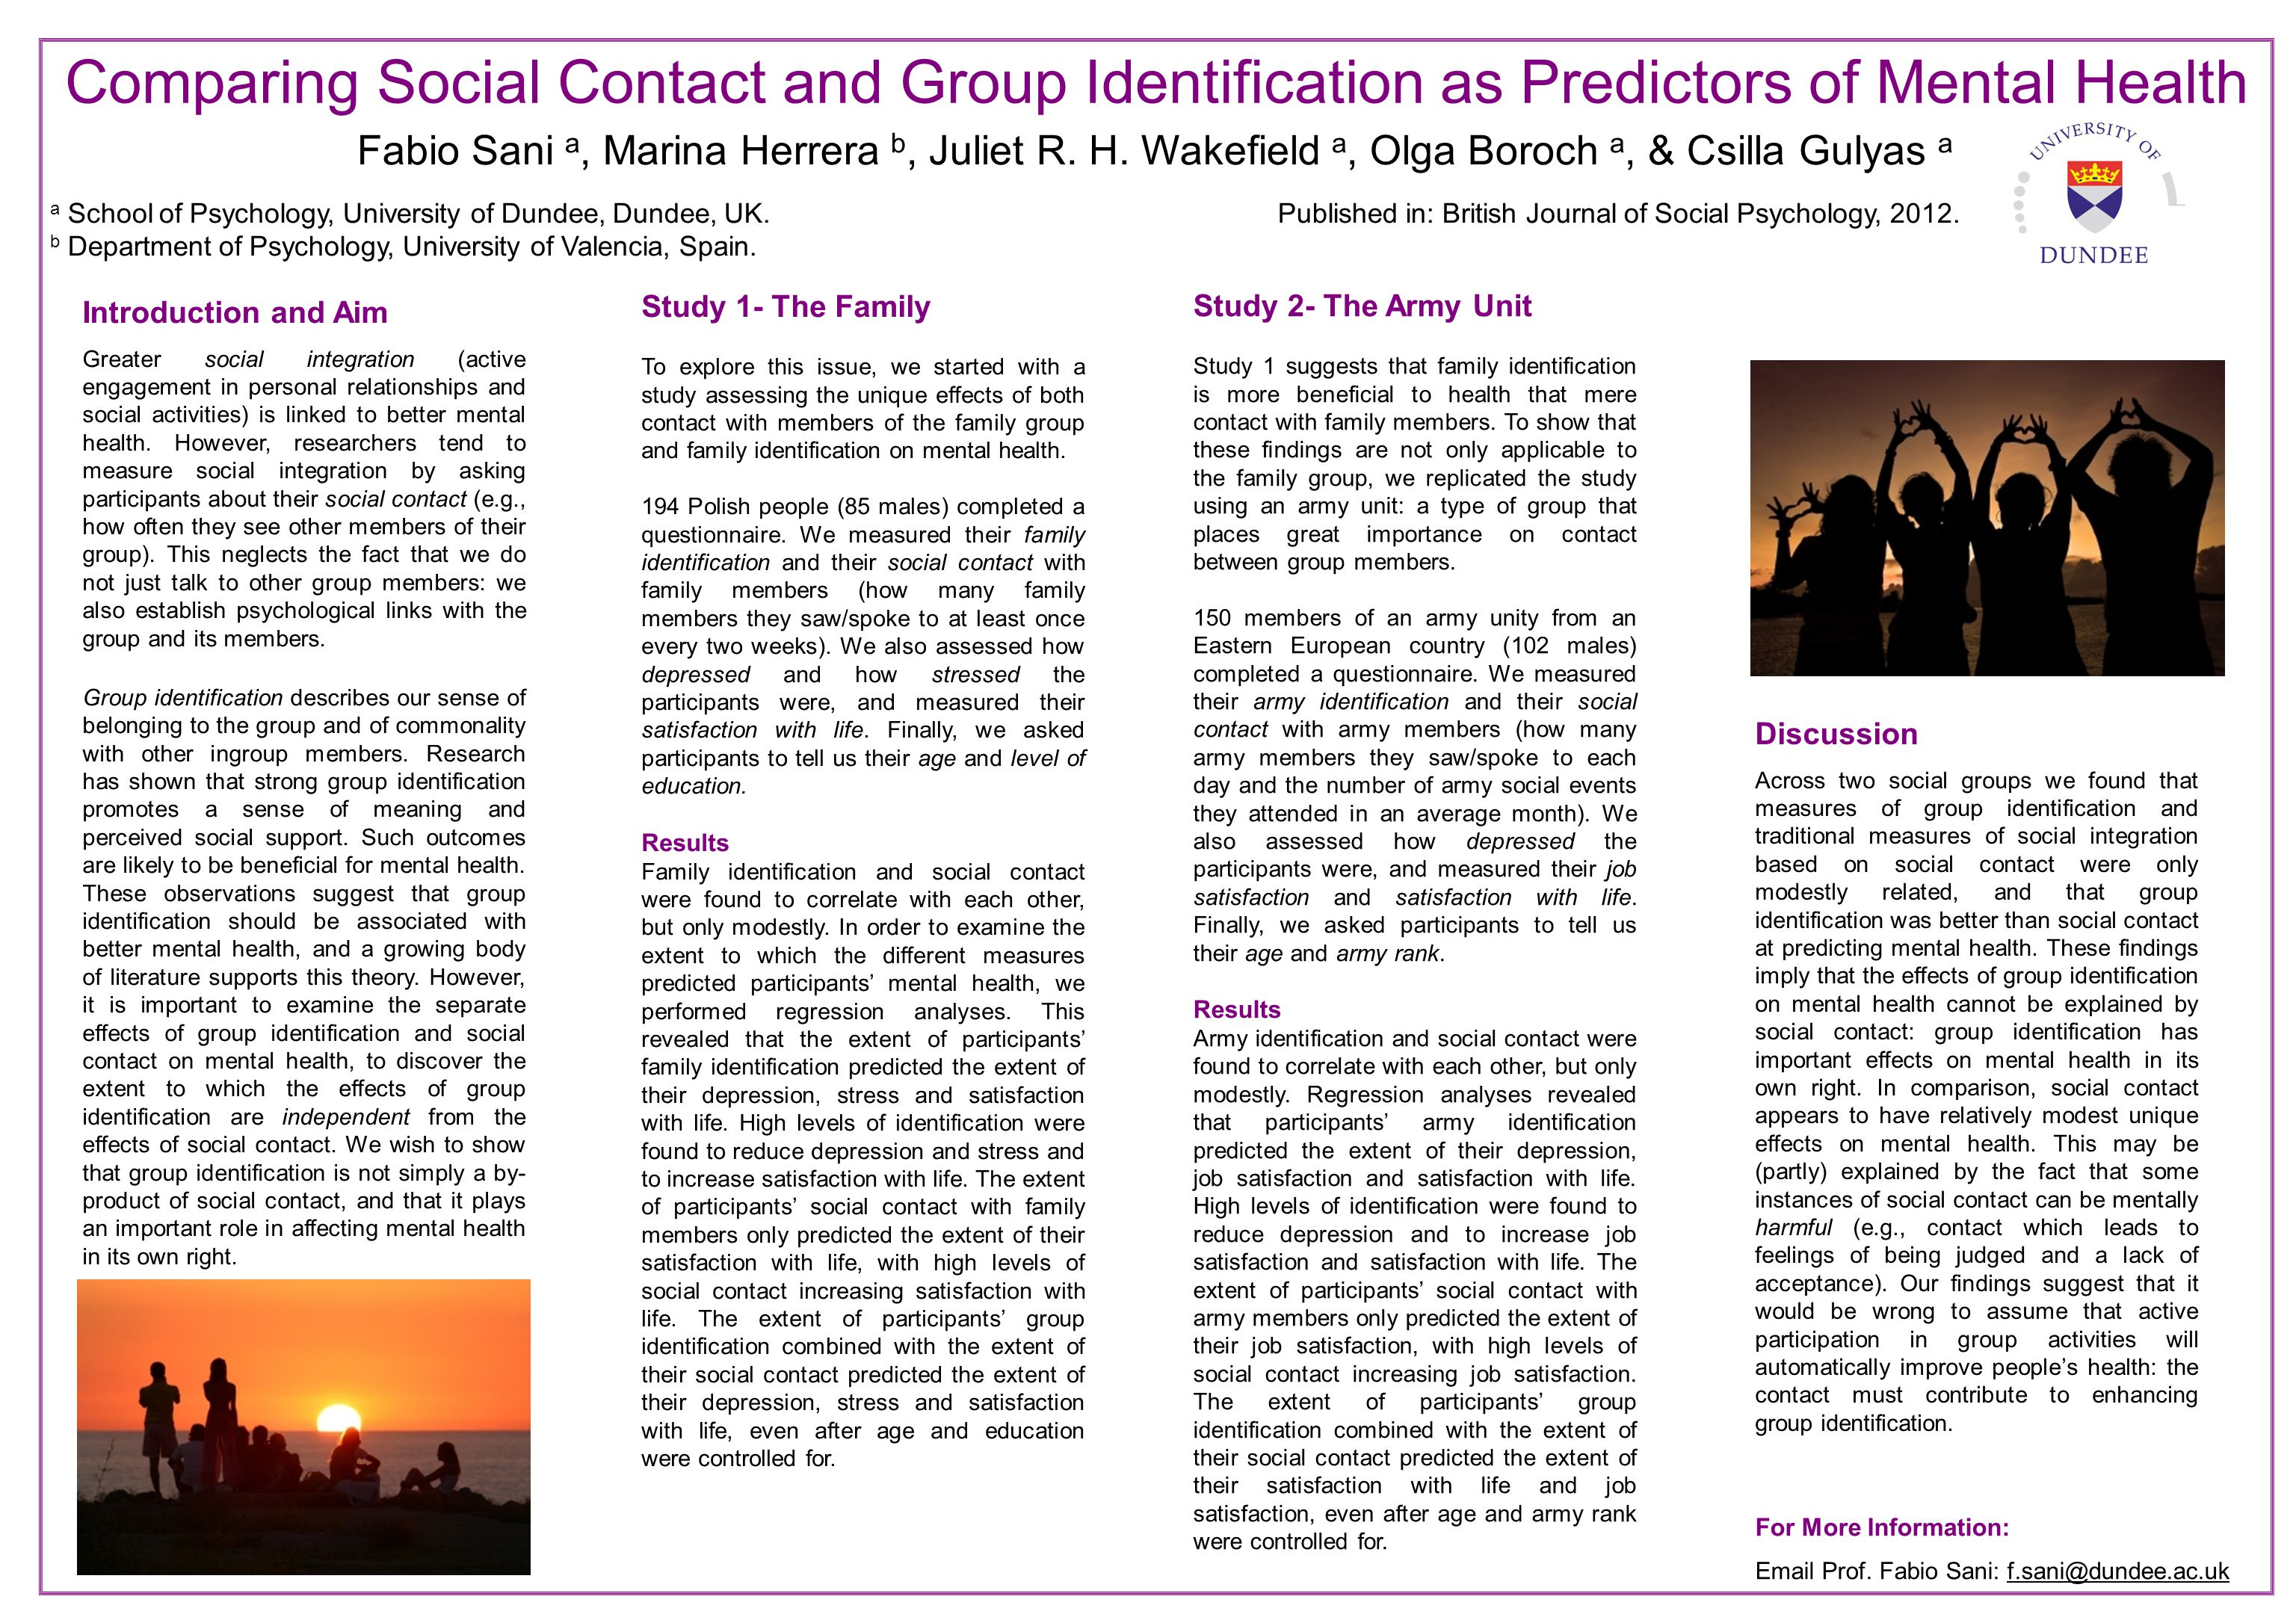 Introduction and Aim Greater social integration (active engagement in personal relationships and social activities) is linked to better mental health.